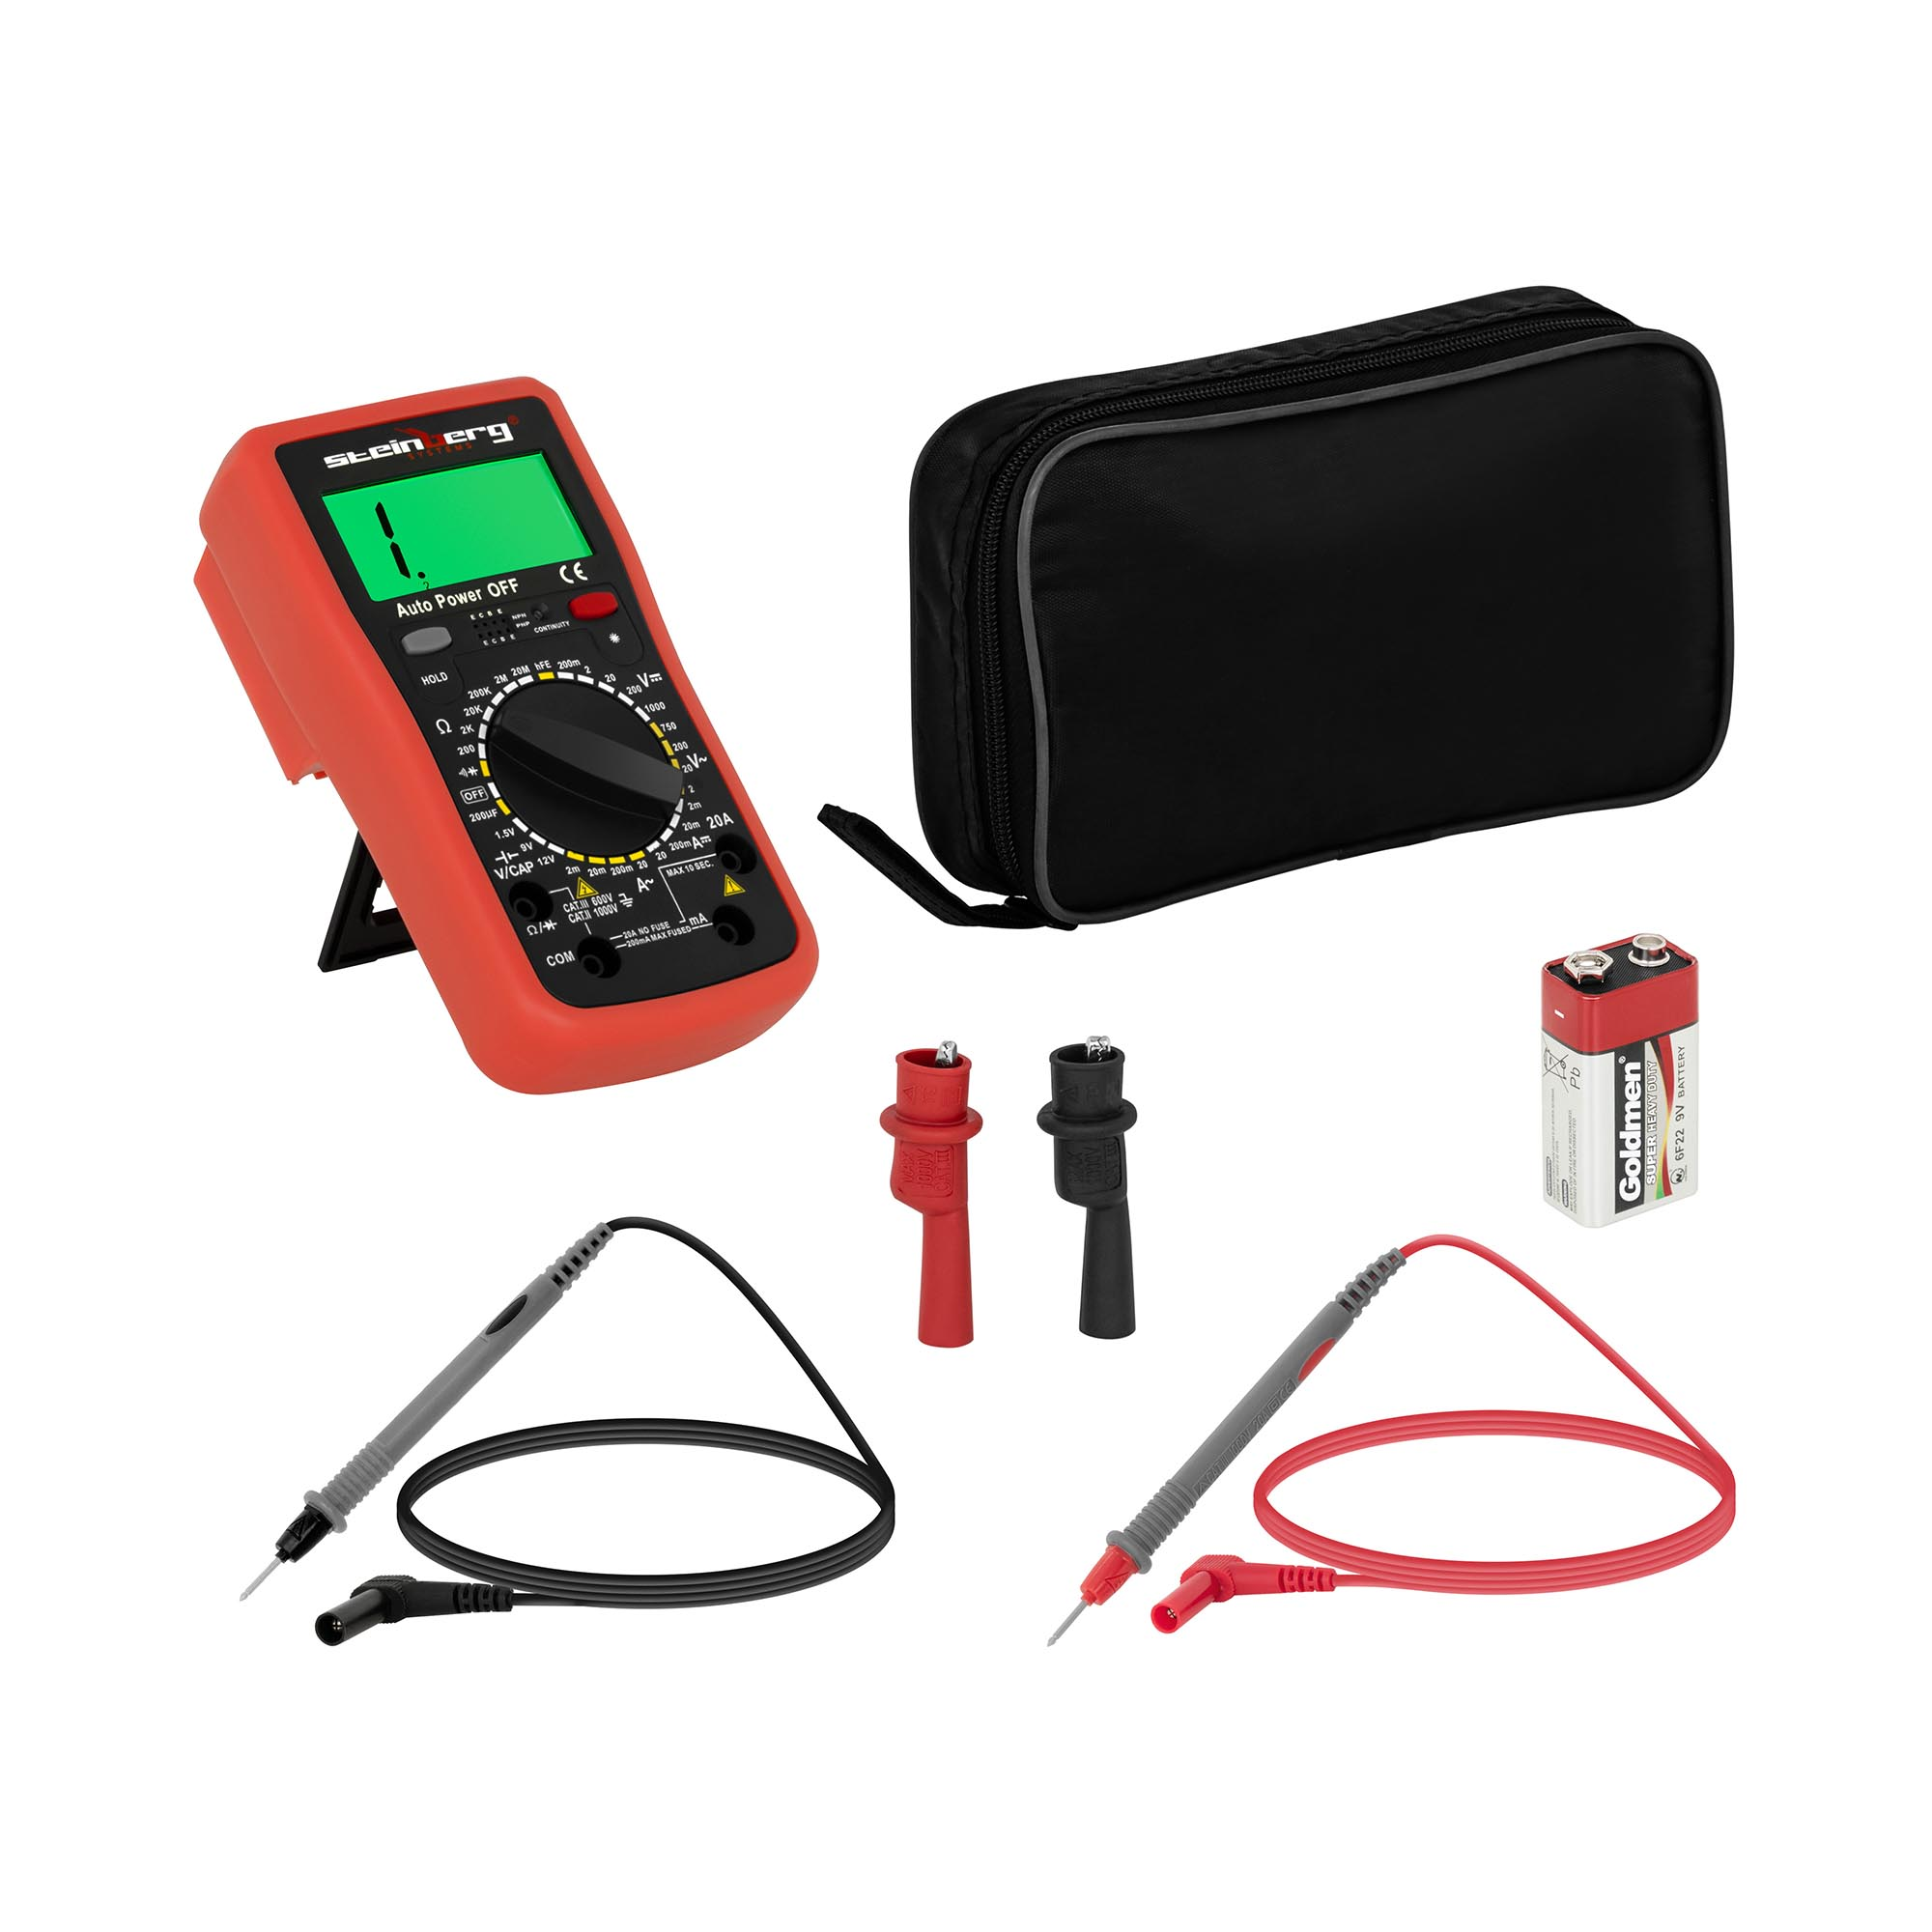 Steinberg Systems Multimeter - 2.000 Counts - hFE-Transistortest 10030396